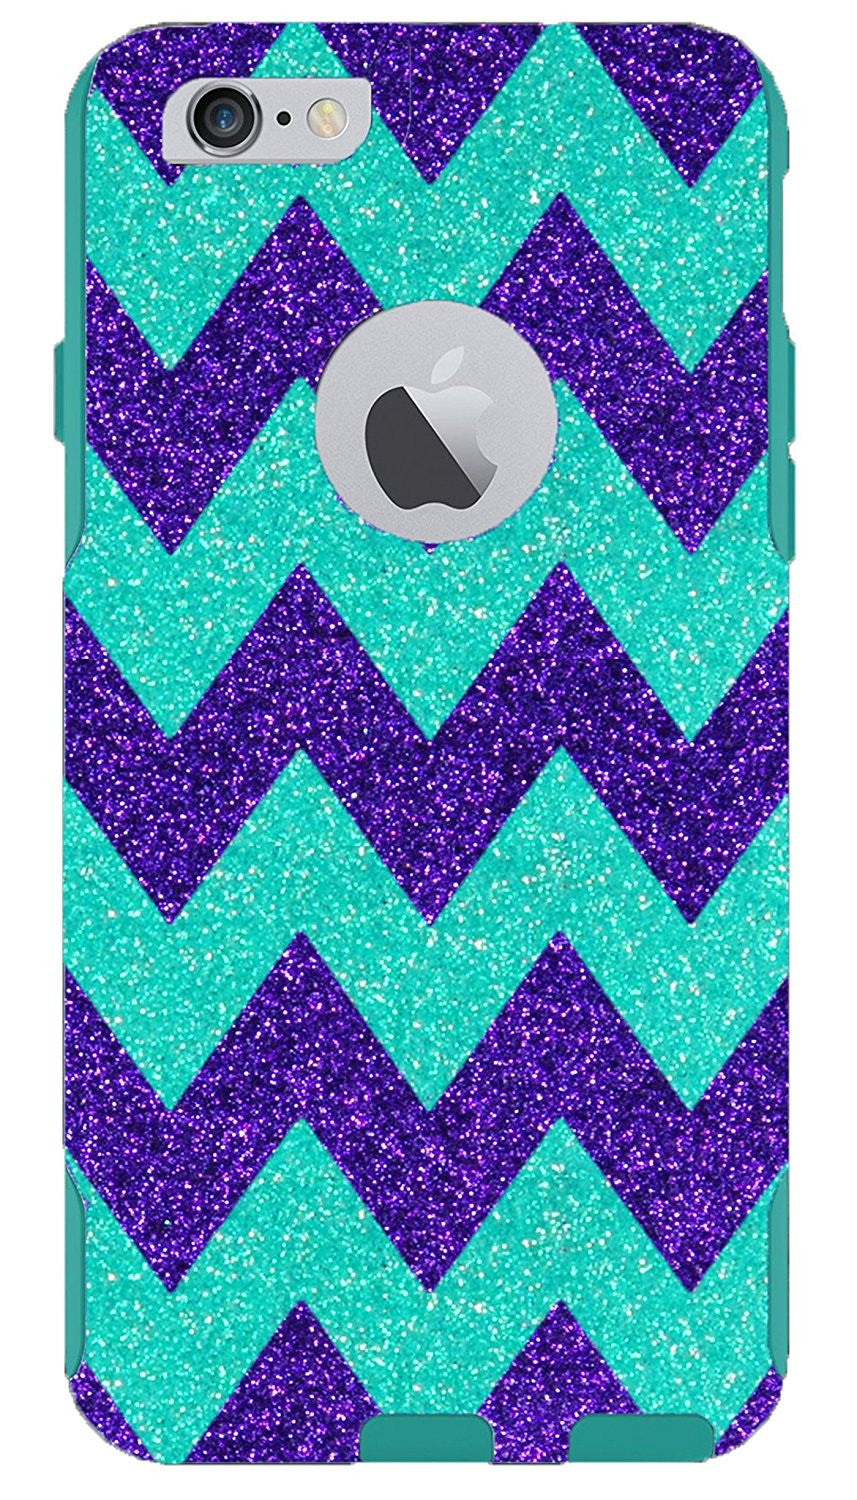 the latest 8b9fd 57d85 iPhone 6s Case - OtterBox Commuter Series - Retail Packaging - 4.7 iPhone  6/6s Glitter Large Wintermint Chevron Purple/Teal